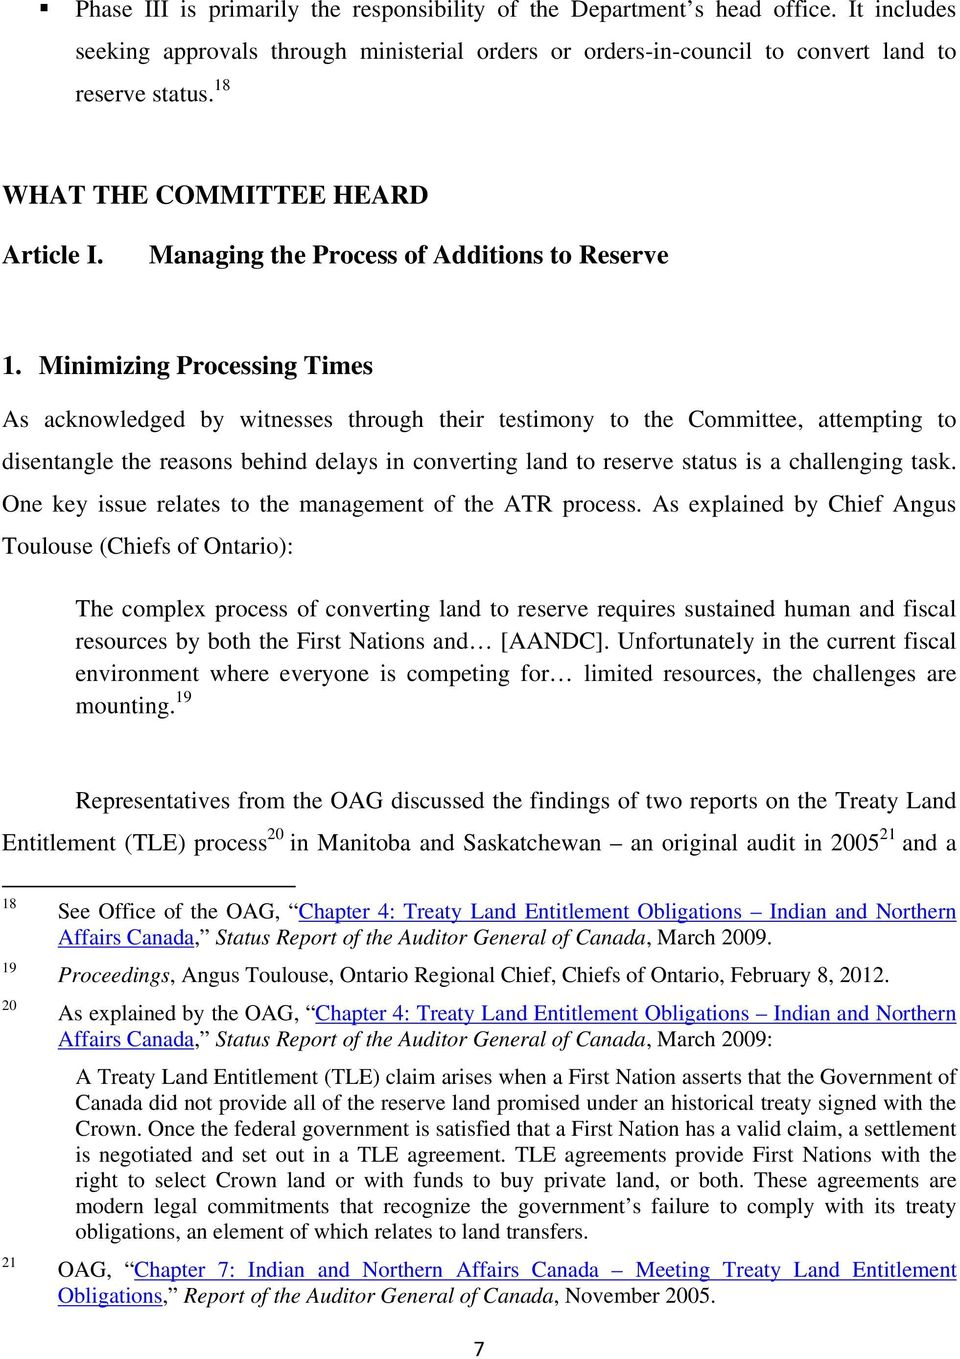 Minimizing Processing Times As acknowledged by witnesses through their testimony to the Committee, attempting to disentangle the reasons behind delays in converting land to reserve status is a